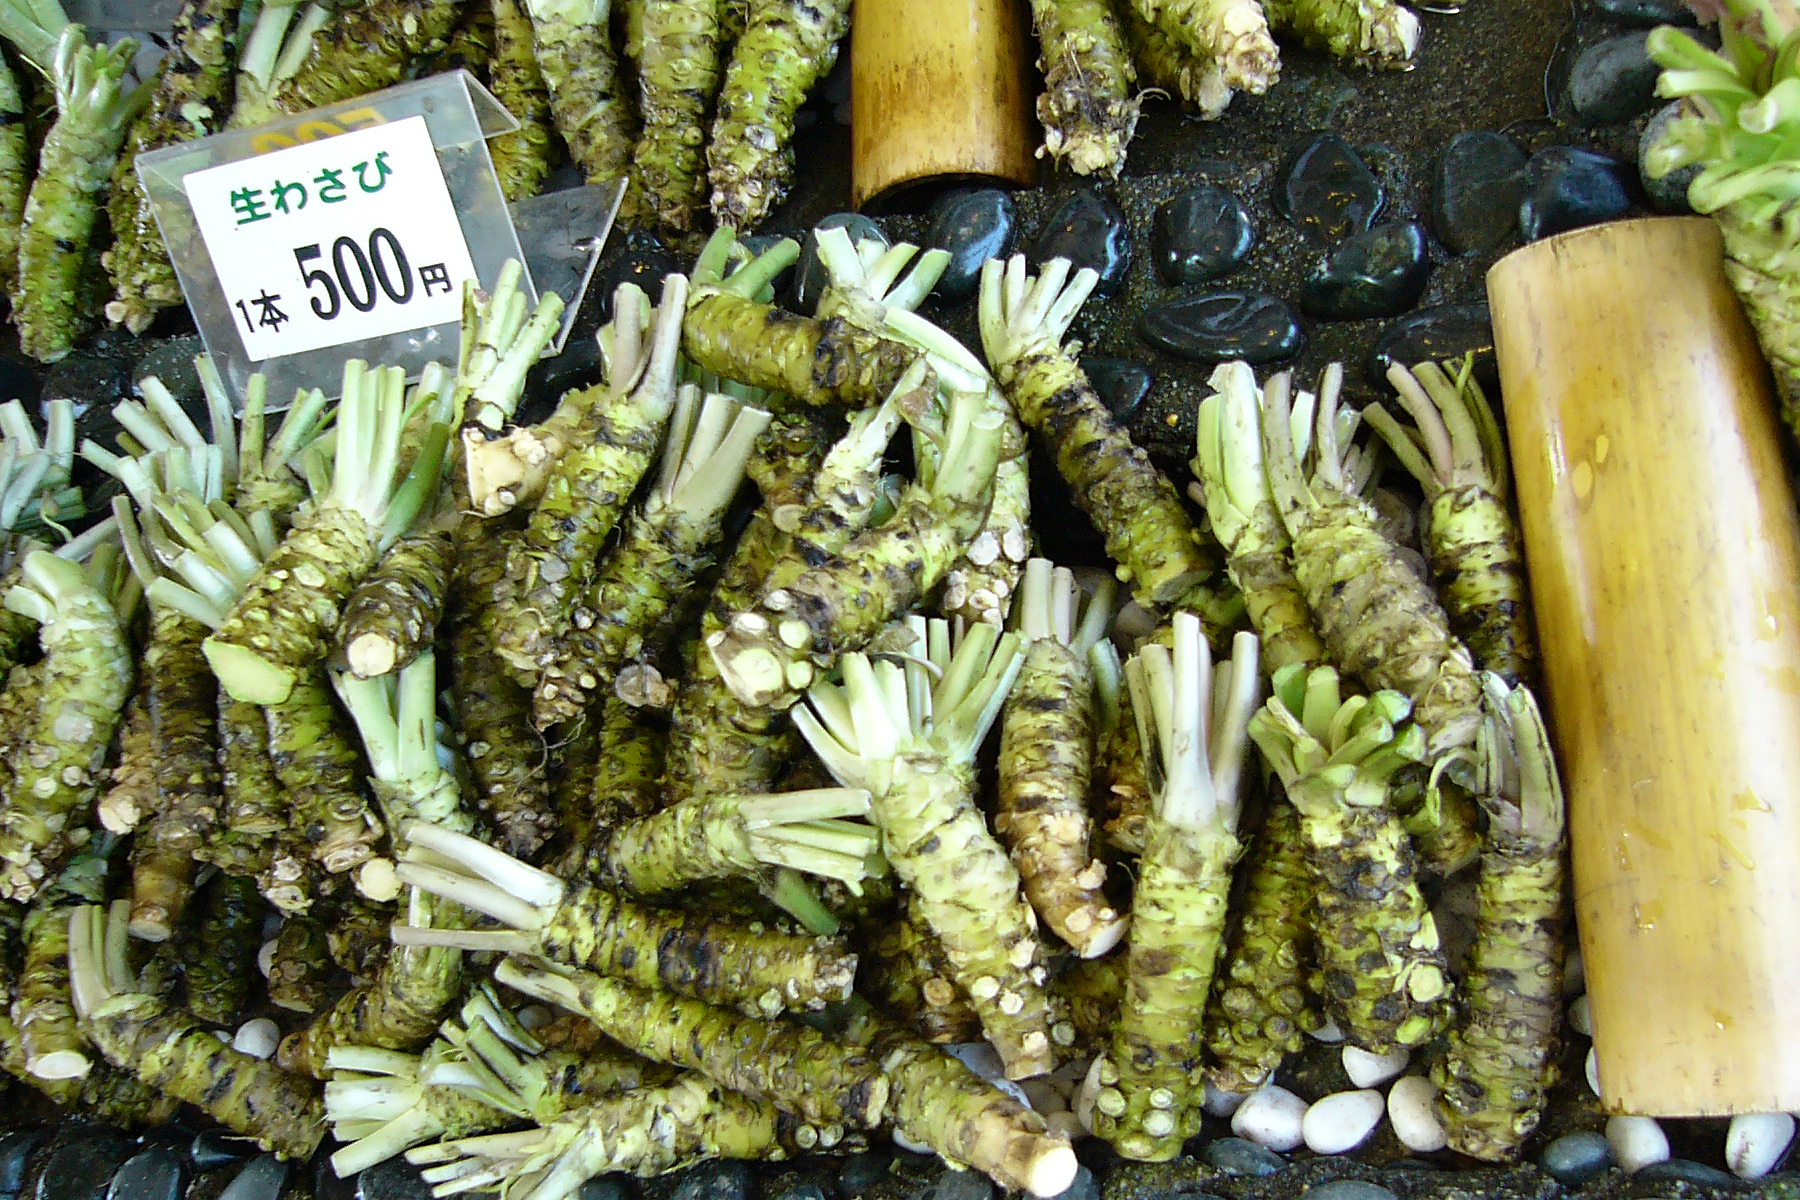 filedaio wasabi farm11s1800jpg wikimedia commons